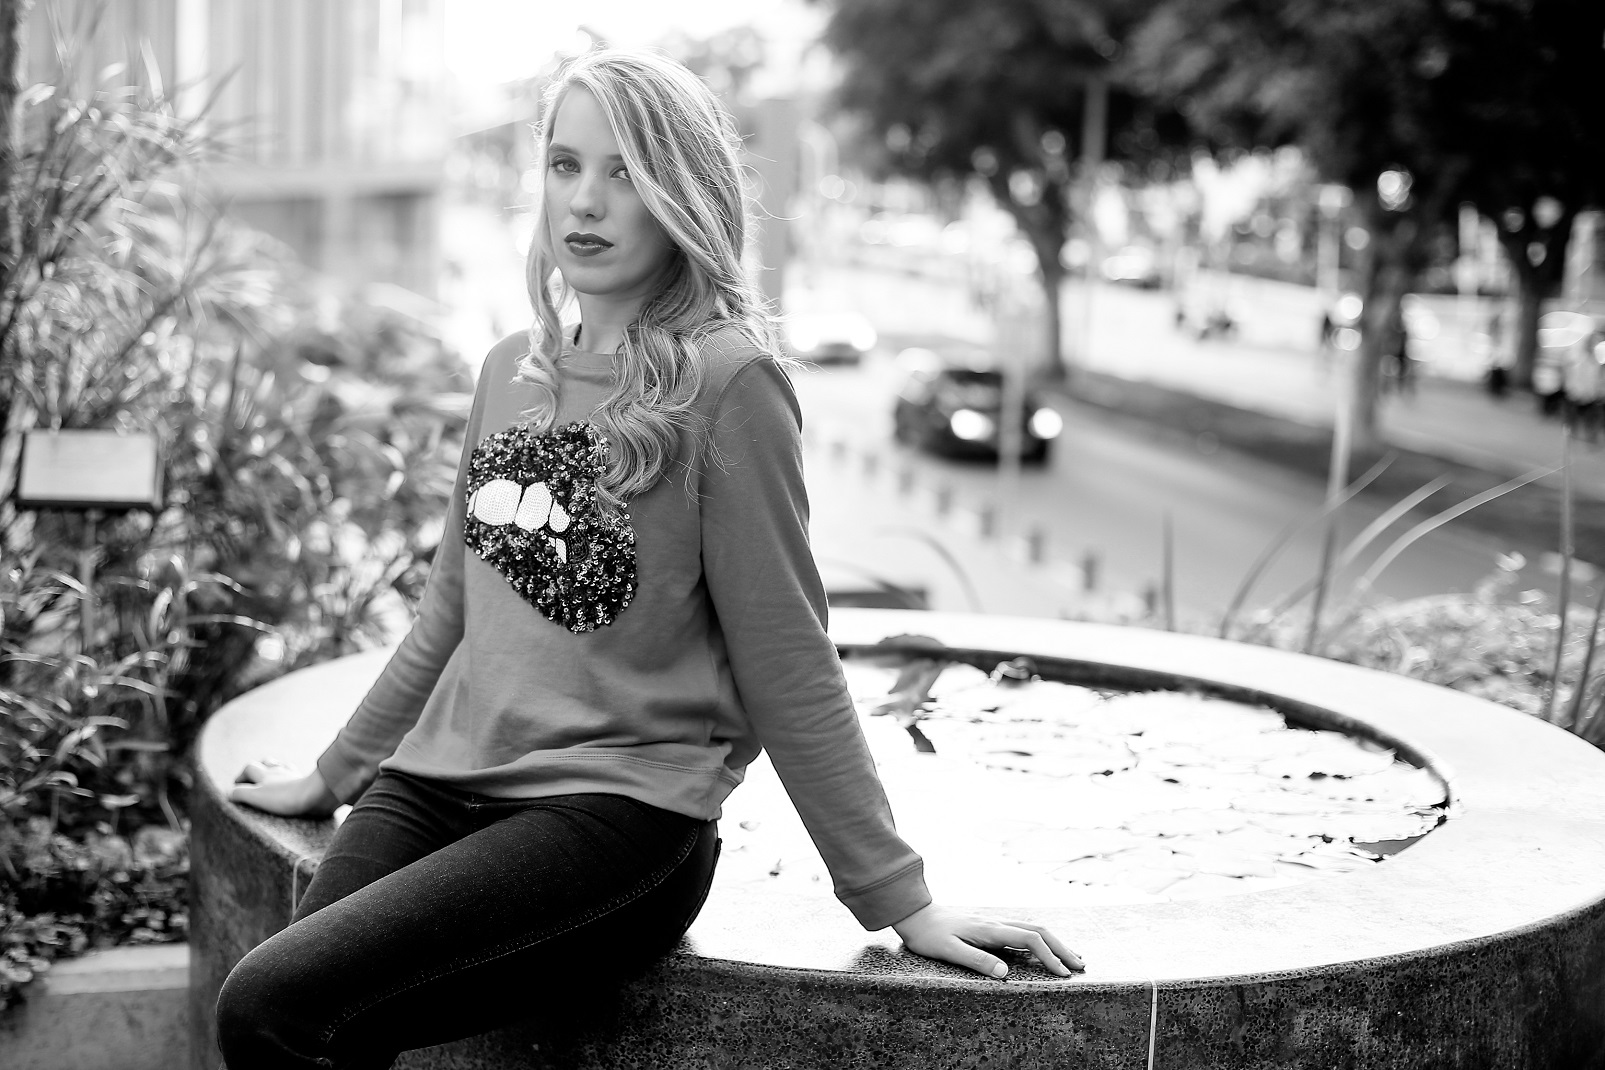 PRINTED TOPS - NEW ADDICTION.... IN BLACK AND WHITE SHOT